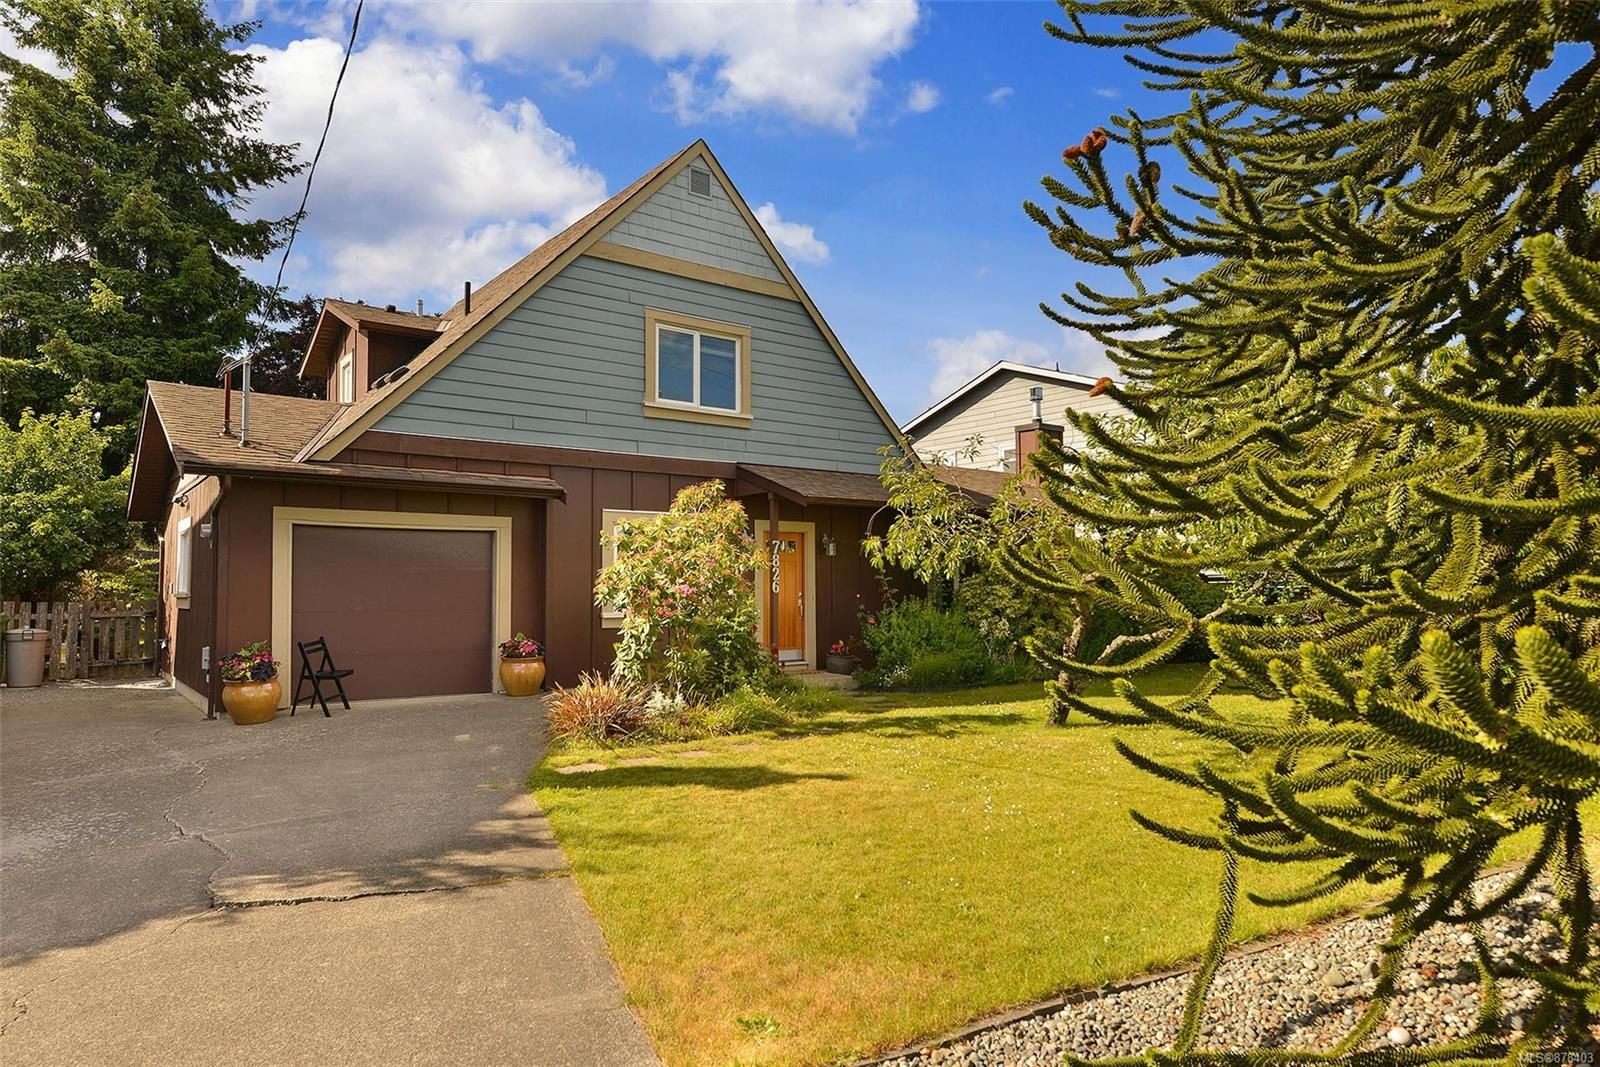 Main Photo: 7826 Wallace Dr in : CS Saanichton House for sale (Central Saanich)  : MLS®# 878403